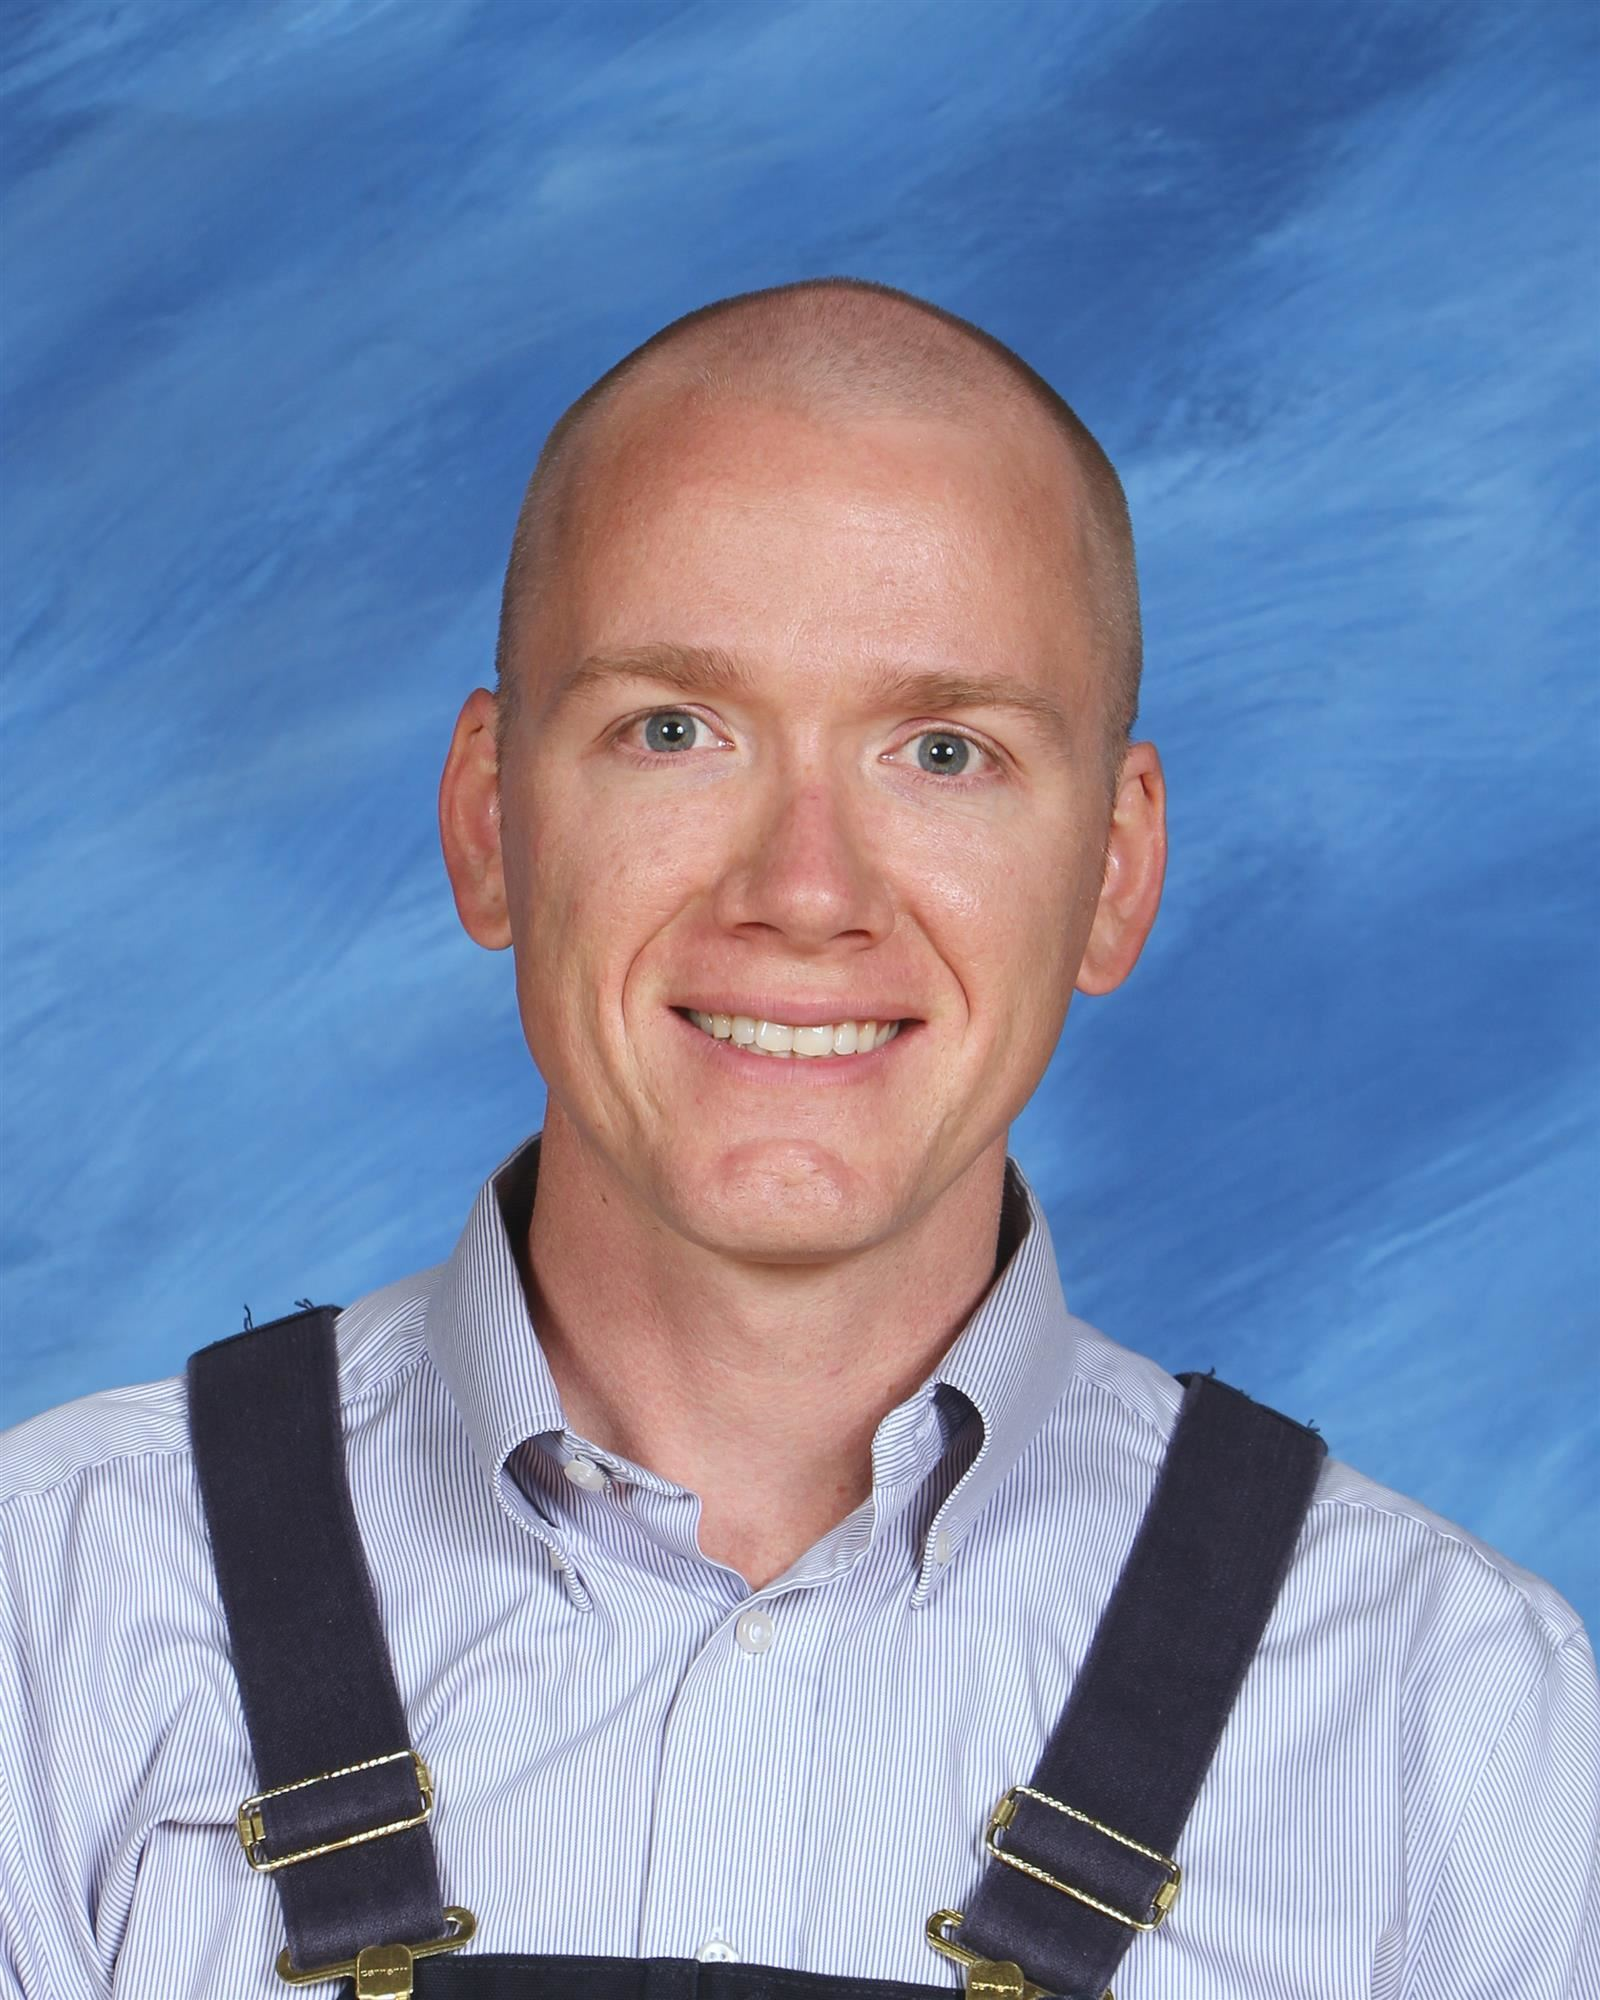 We'd lWe'd like to announce our WHS Wasatch Parent Network March Teacher of the Month: Jimmy Hansen.